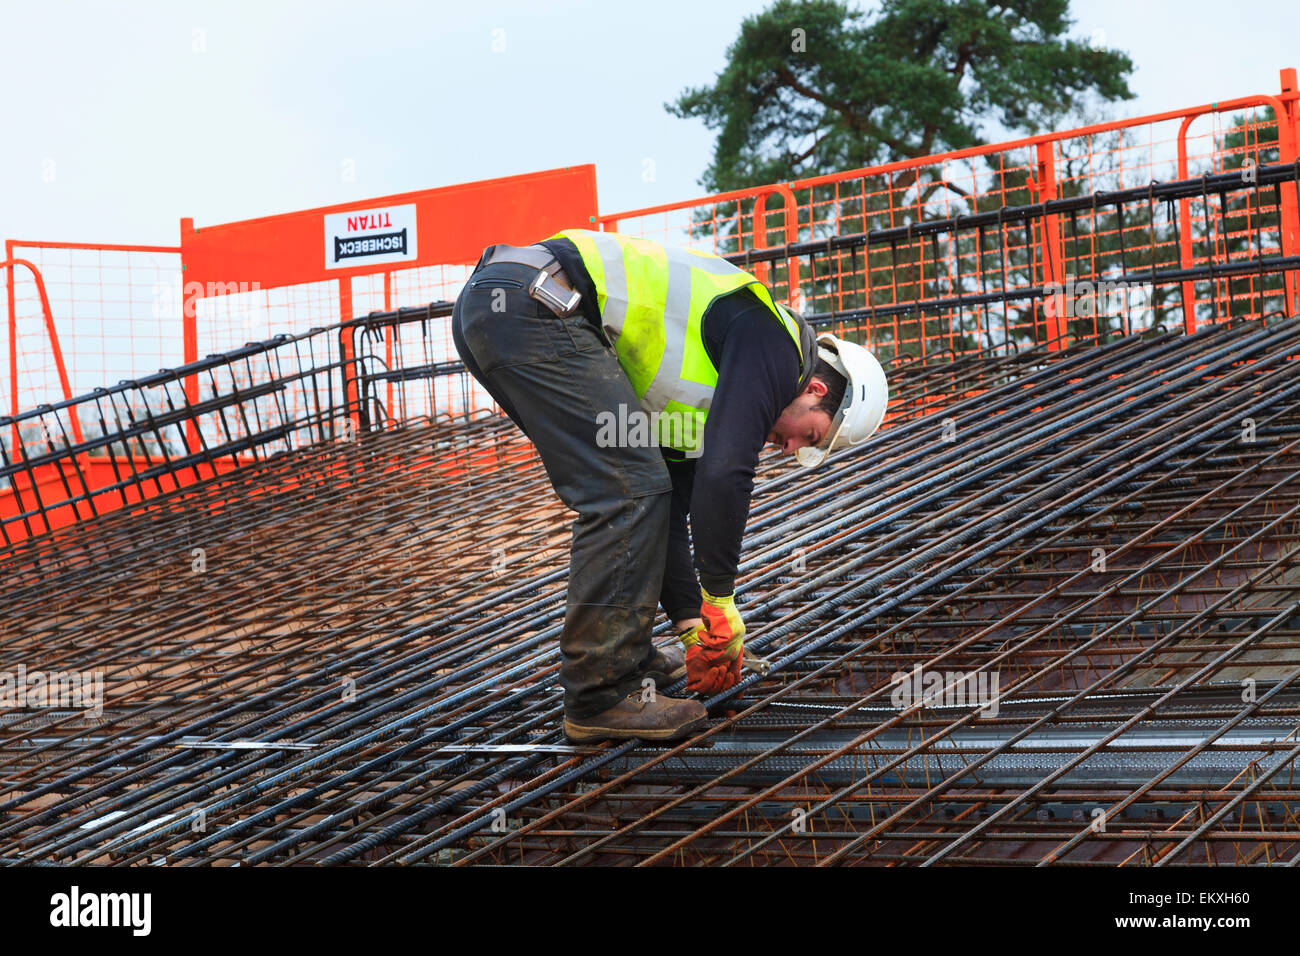 Construction worker tying up reinforcing bars prior to pouring of concrete on a commercial building roof. - Stock Image